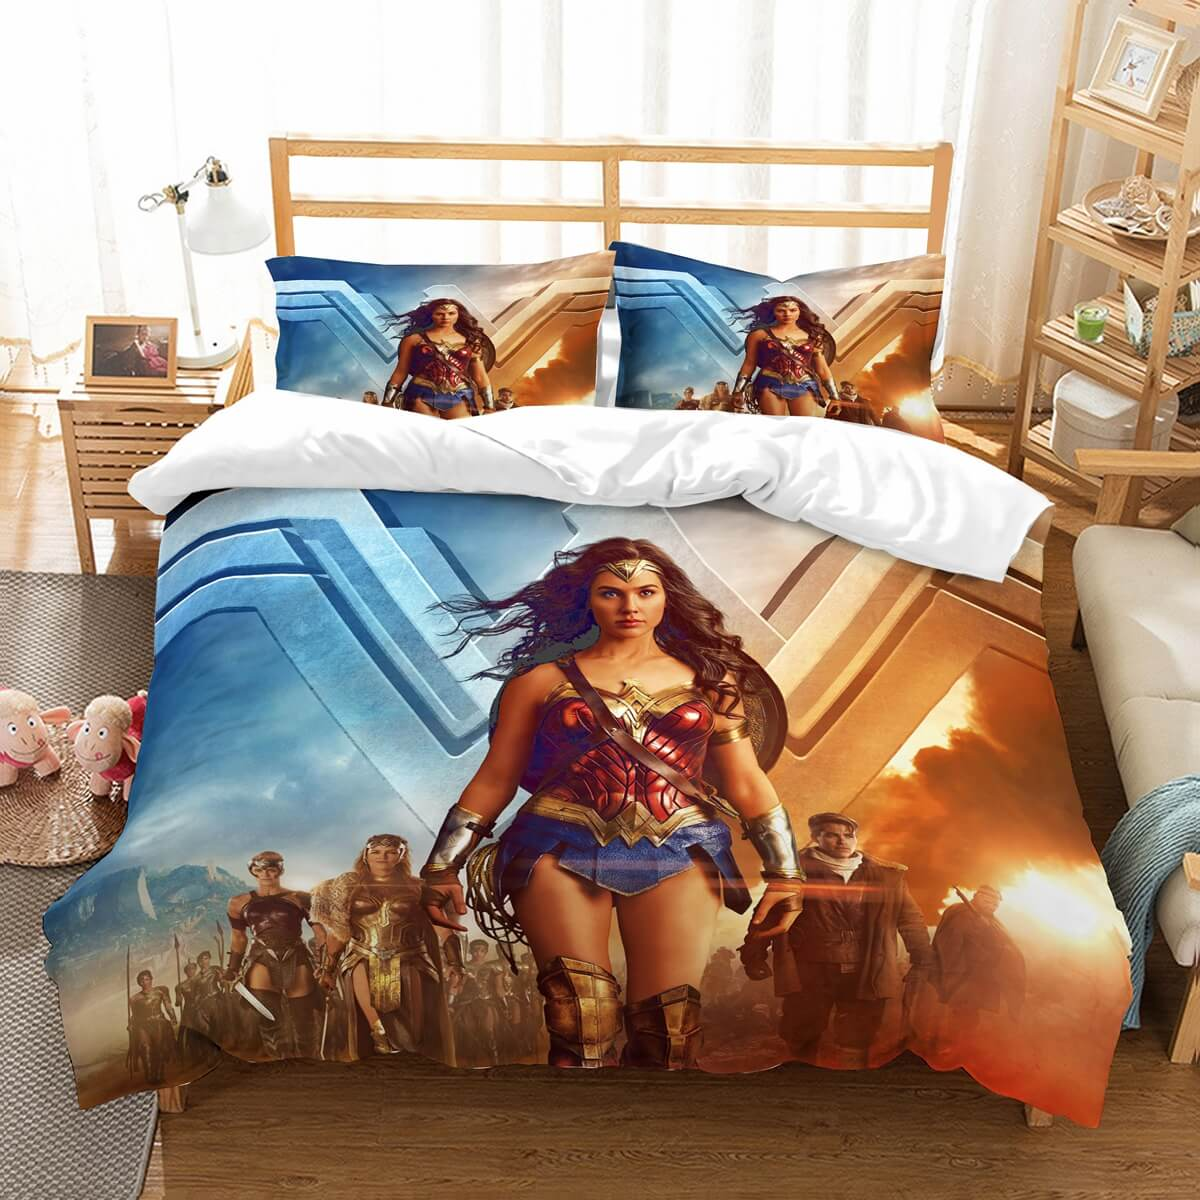 3D Customize Wonder Woman Bedding Set Duvet Cover Set Bedroom Set Bedlinen